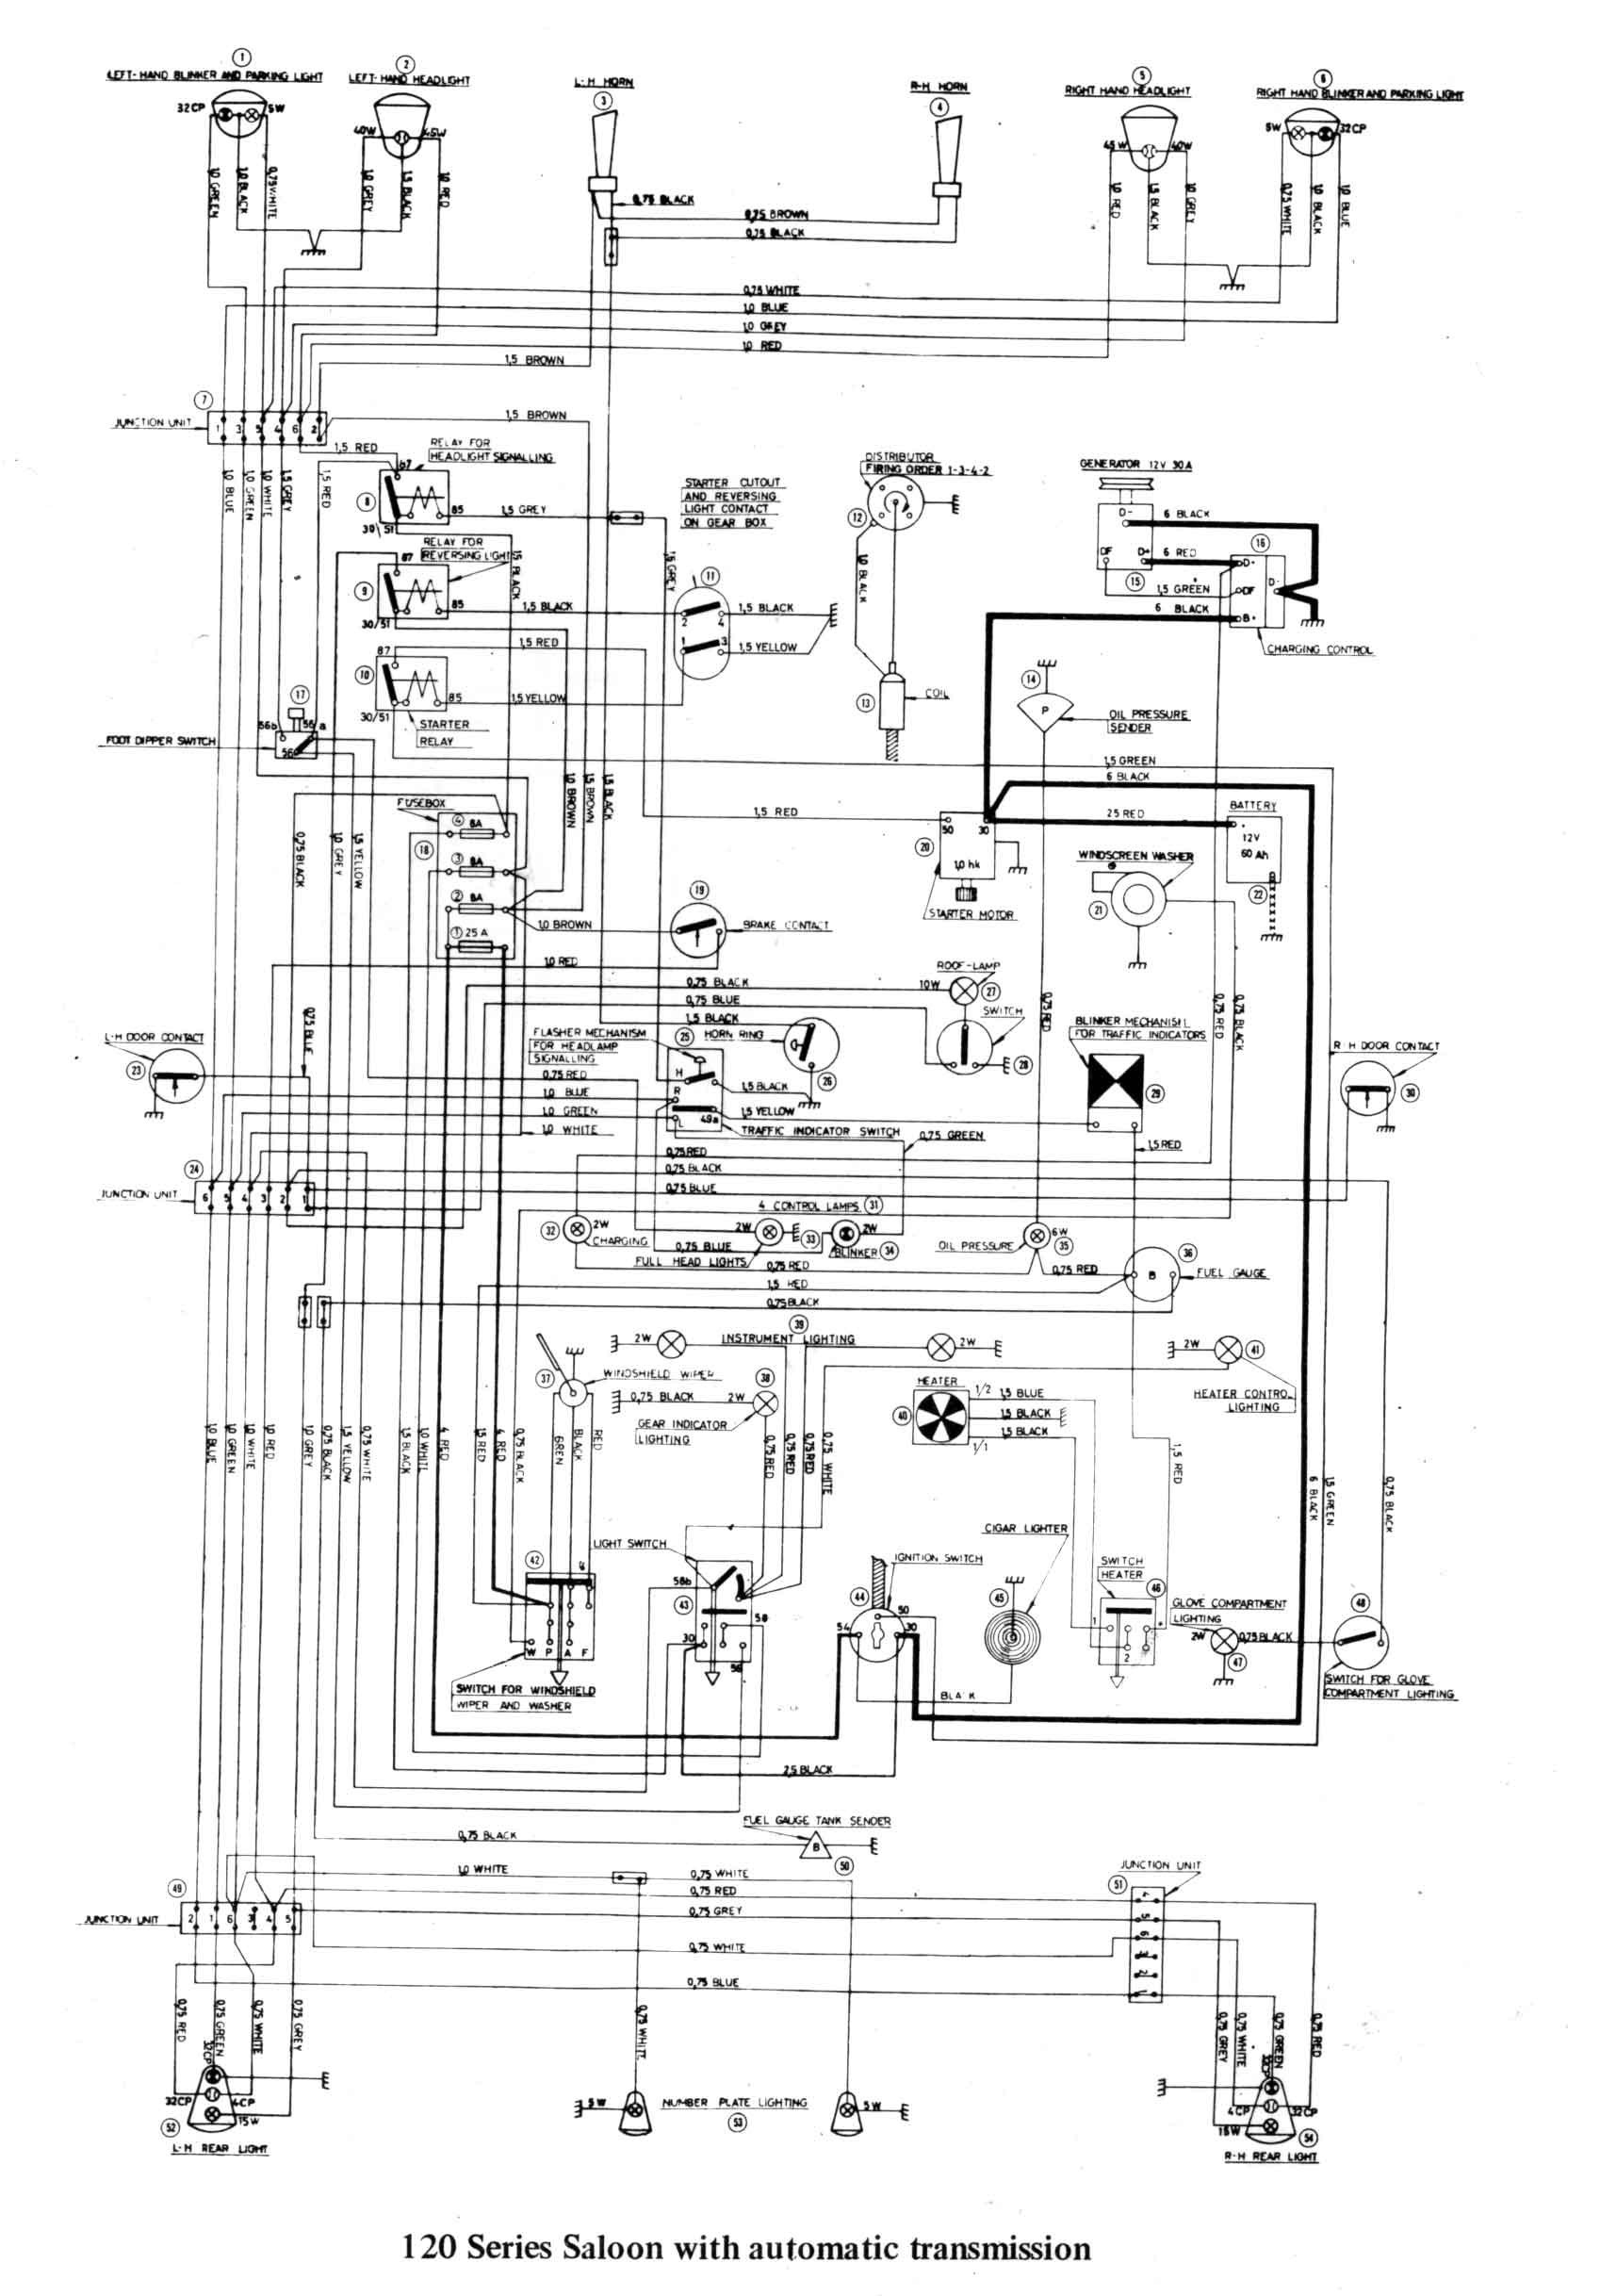 classic car wiring diagram Download Car Transmission Diagram Sw Em Od Retrofitting A Vintage Volvo